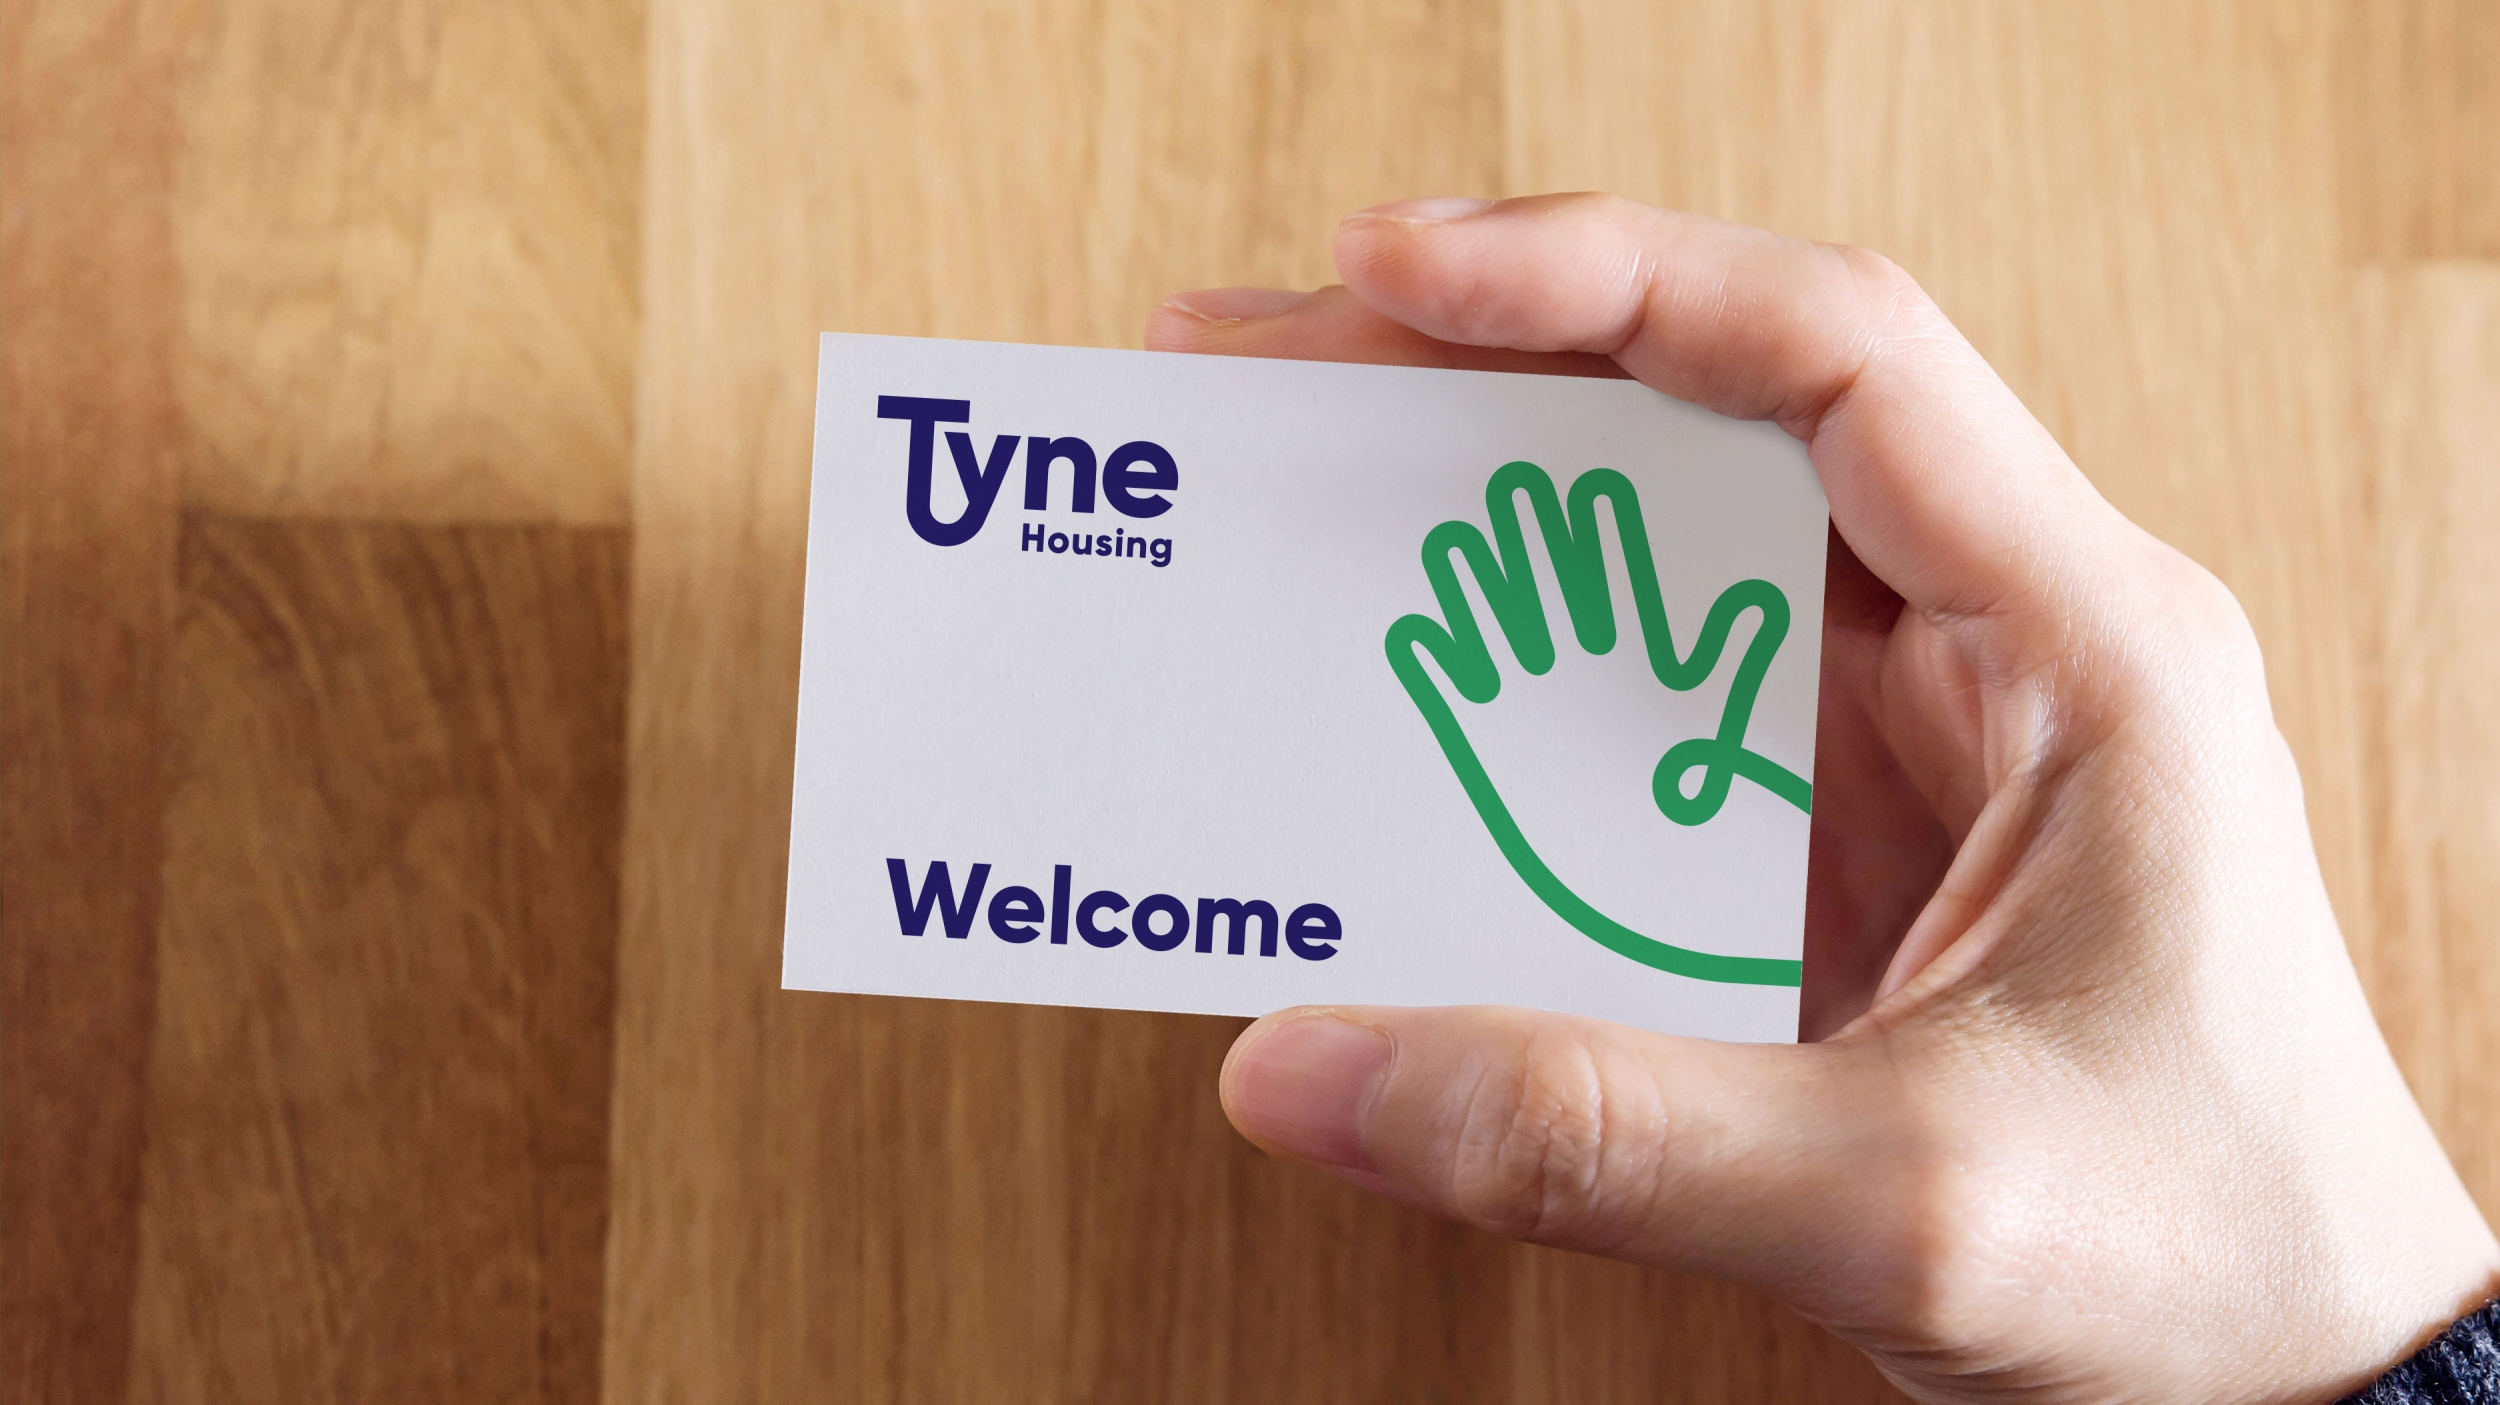 Tyne Housing association branding and business card by Altogether Creative.